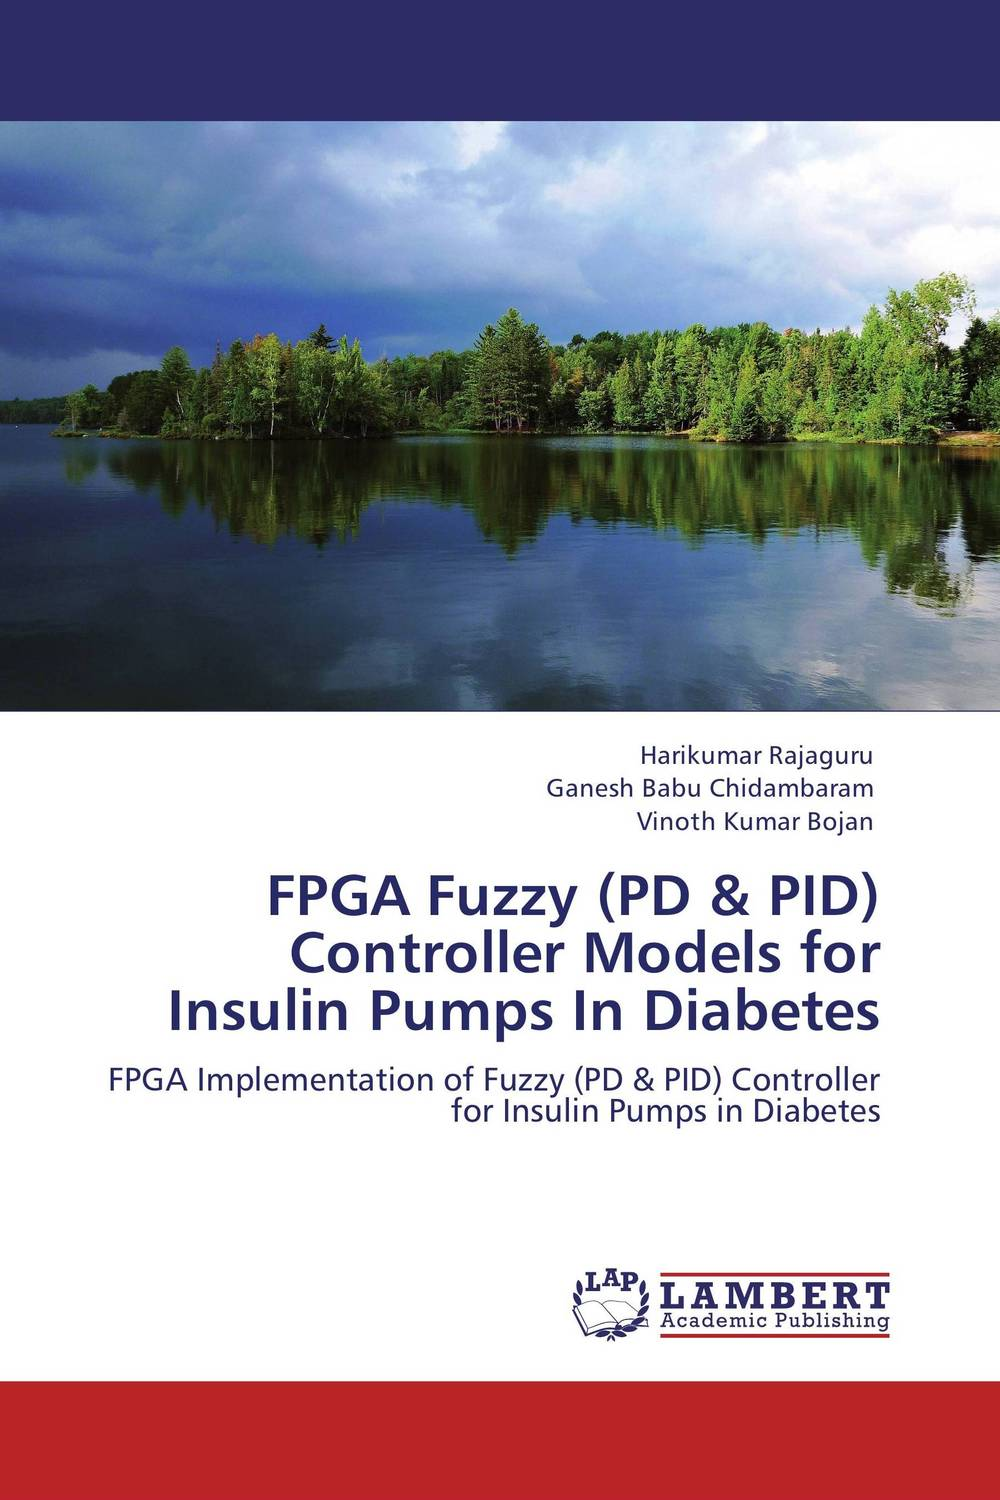 FPGA Fuzzy (PD & PID) Controller Models for Insulin Pumps In Diabetes rakesh kumar and vineet shibe comparision conventional pid controller